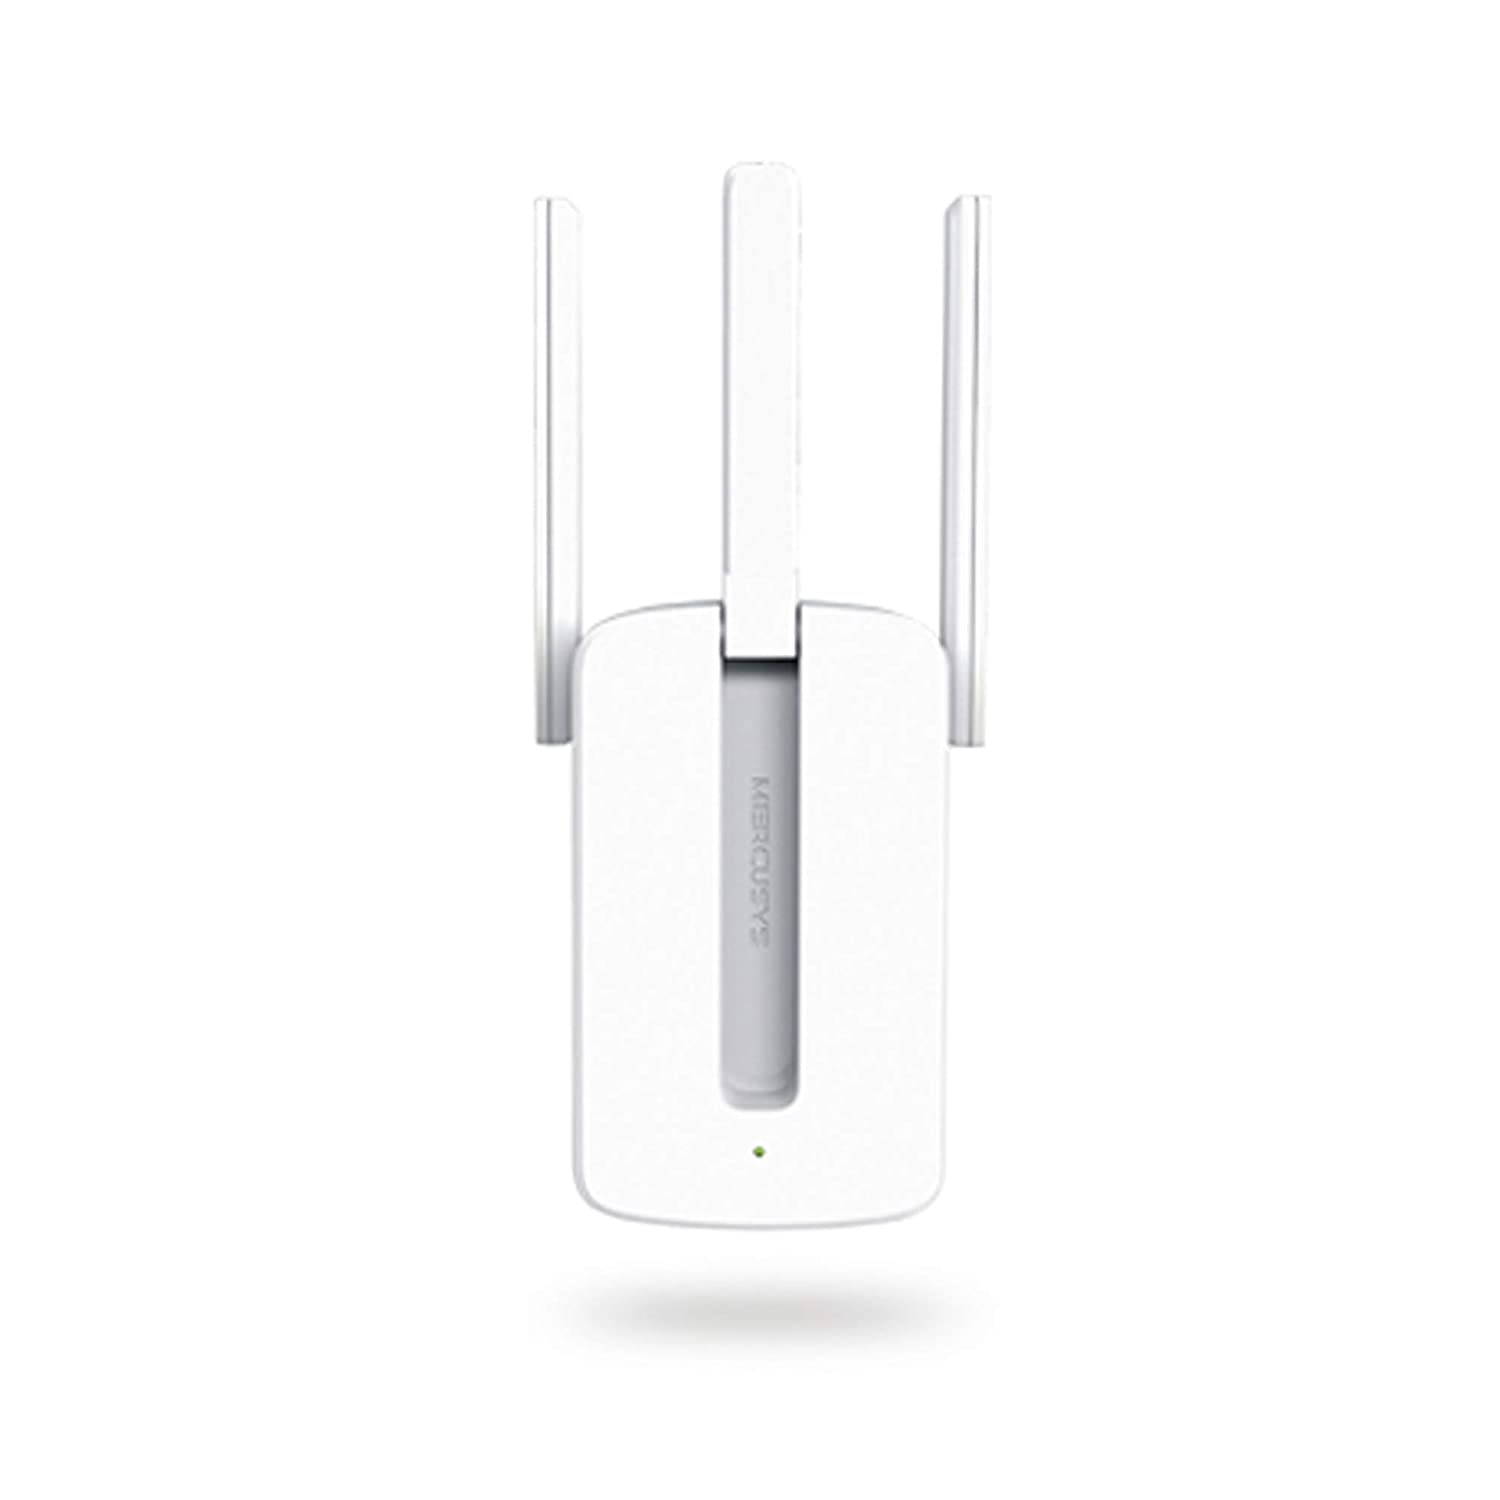 Mercusys MW300RE Wireless Repeater WiFi Booster   MIMO Technology   Three External Antennas   300Mbps Speed Wi-Fi Range Extender